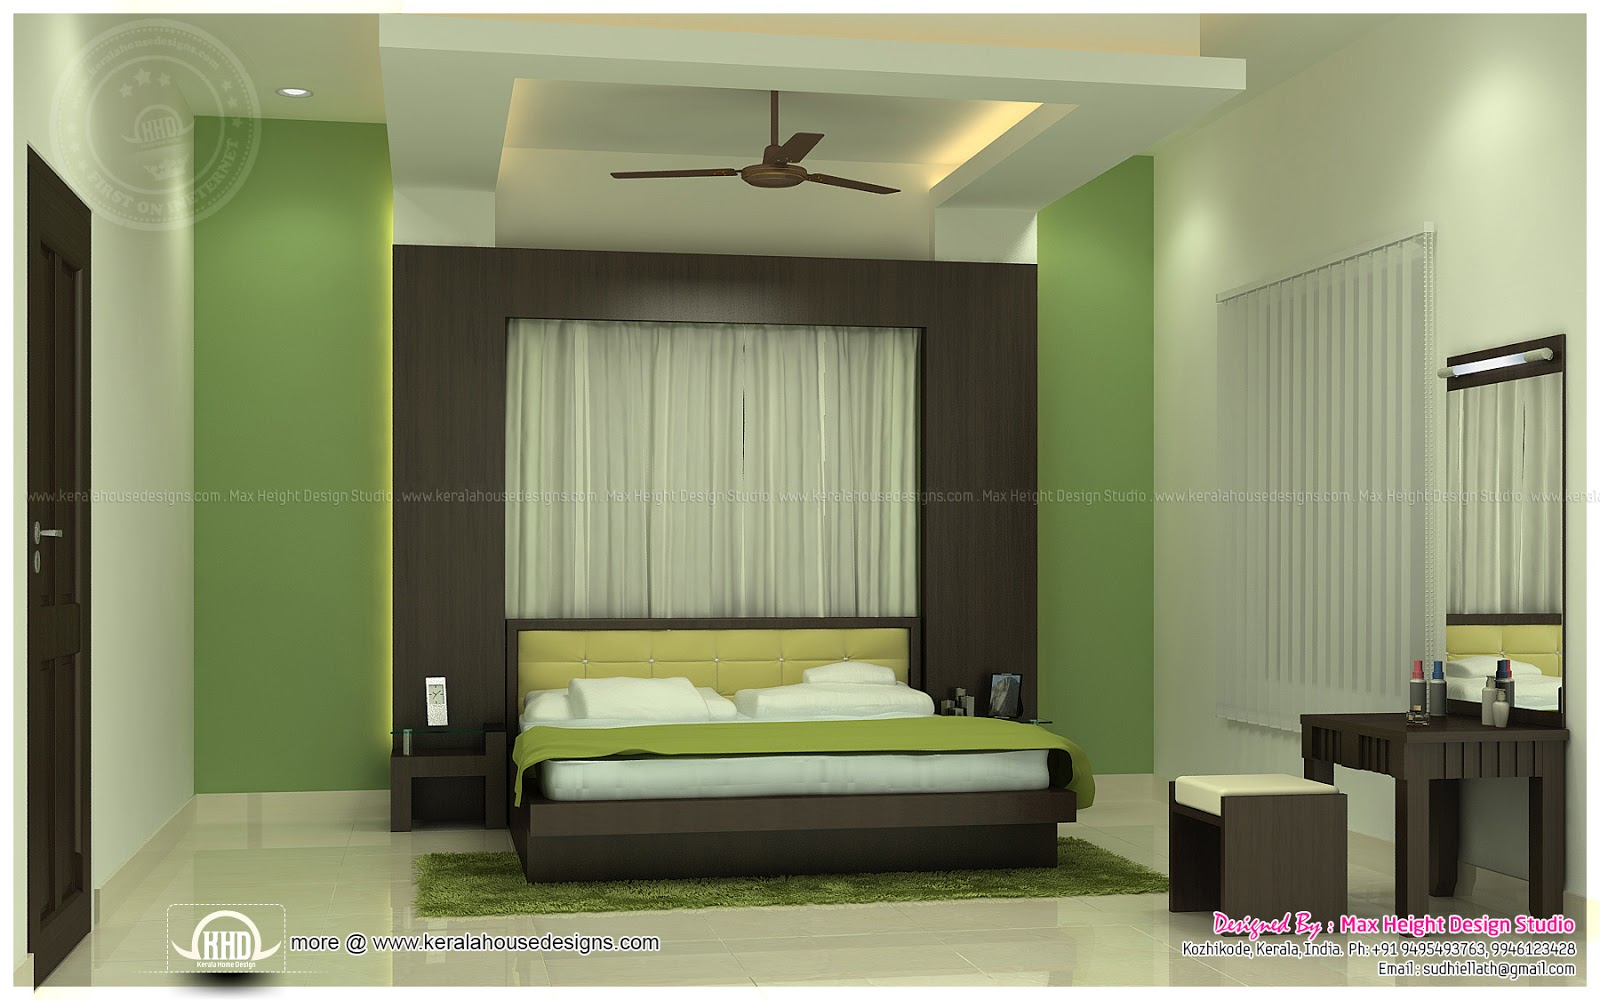 Interior Design Photos For Small Homes In India Bohlerint